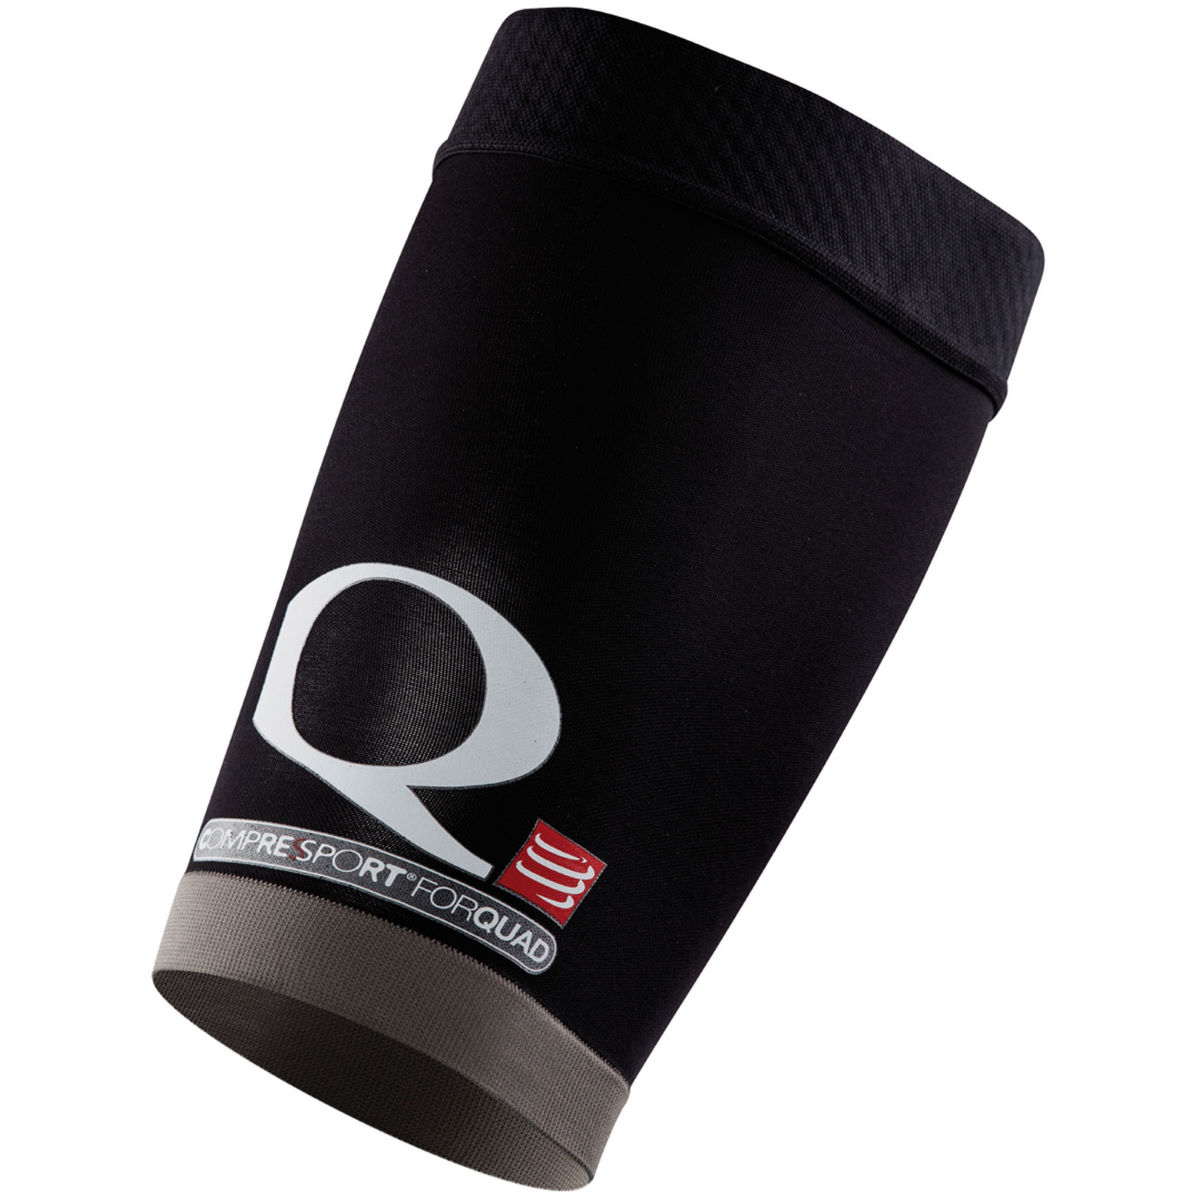 Compressport 4 Quad Sleeves